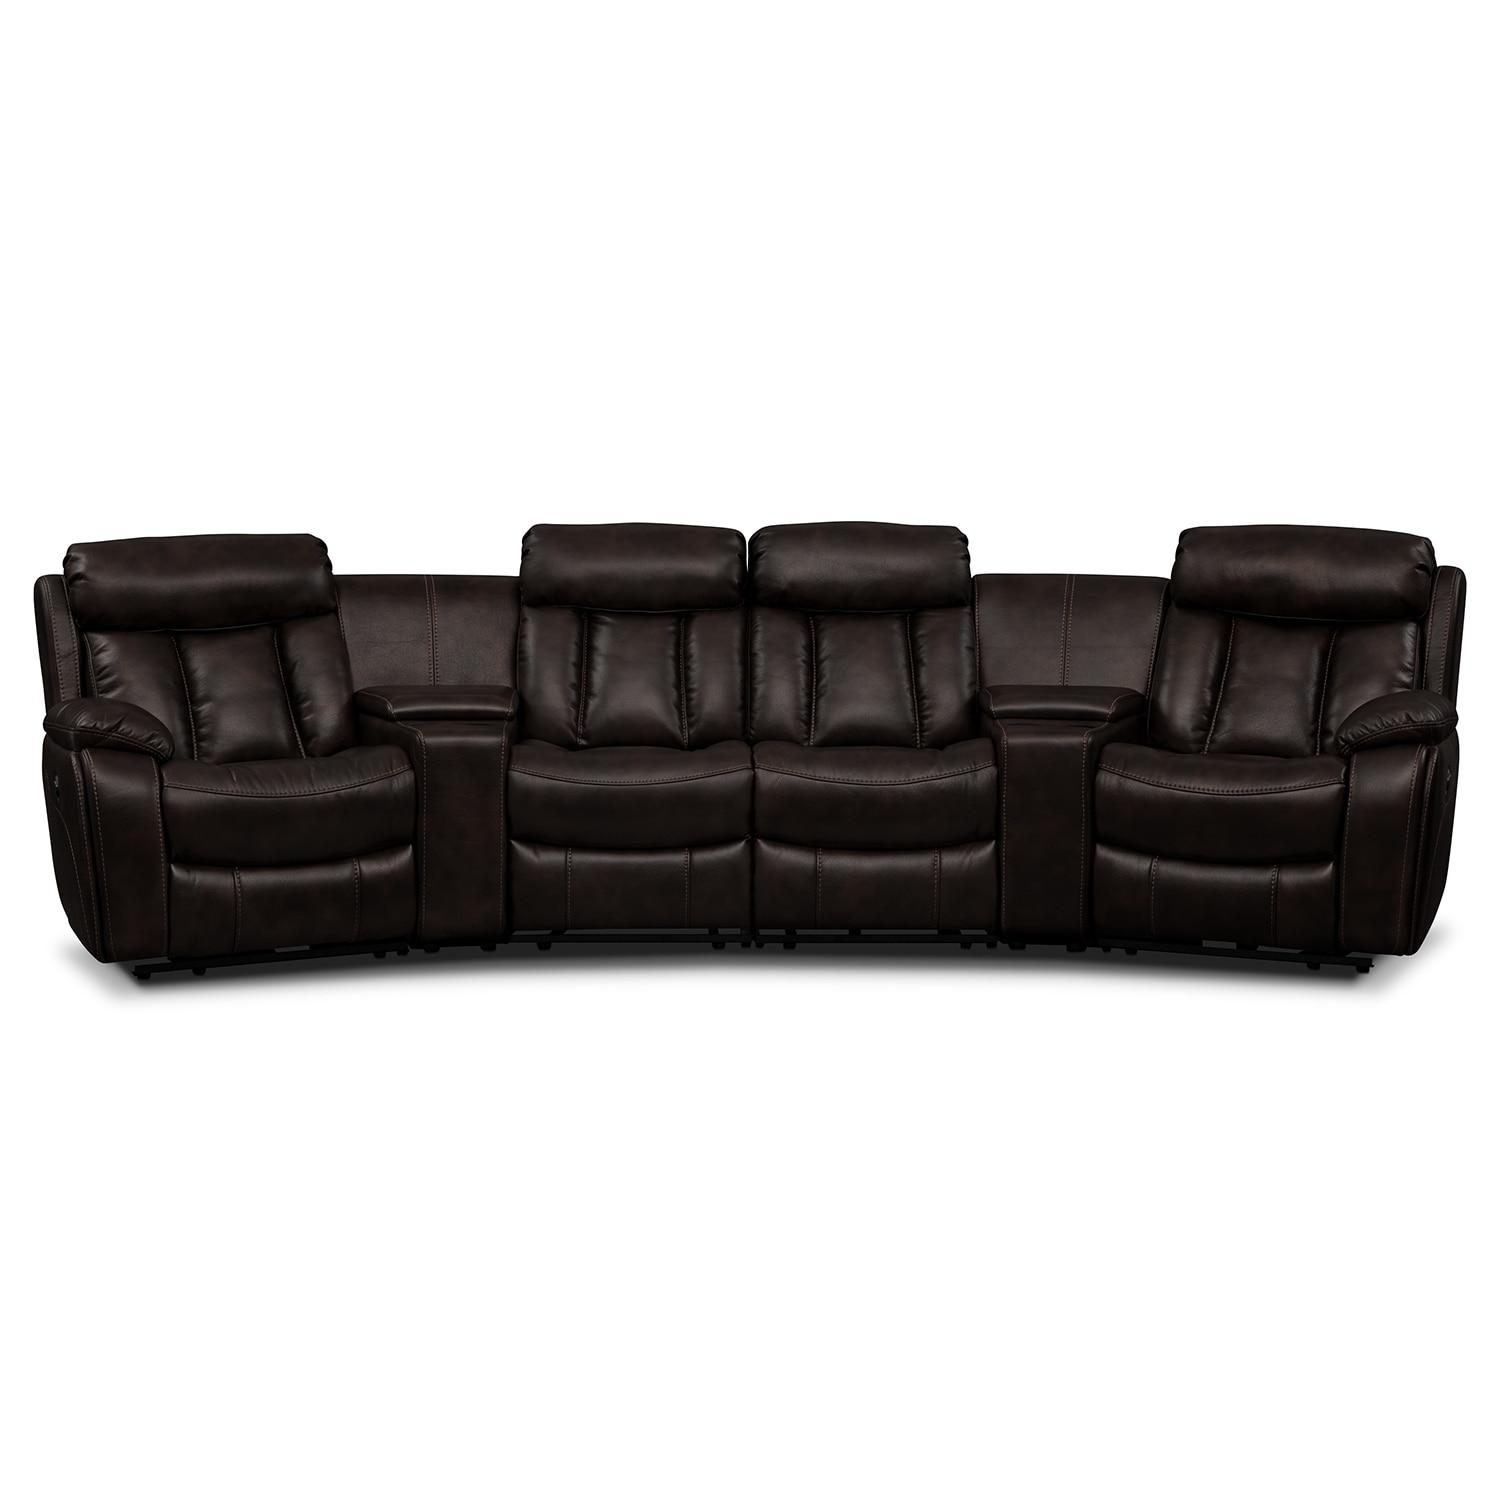 Sectionals With Cup Holders – Marketing Module | Value City Furniture In Sofas With Cup Holders (Image 15 of 20)